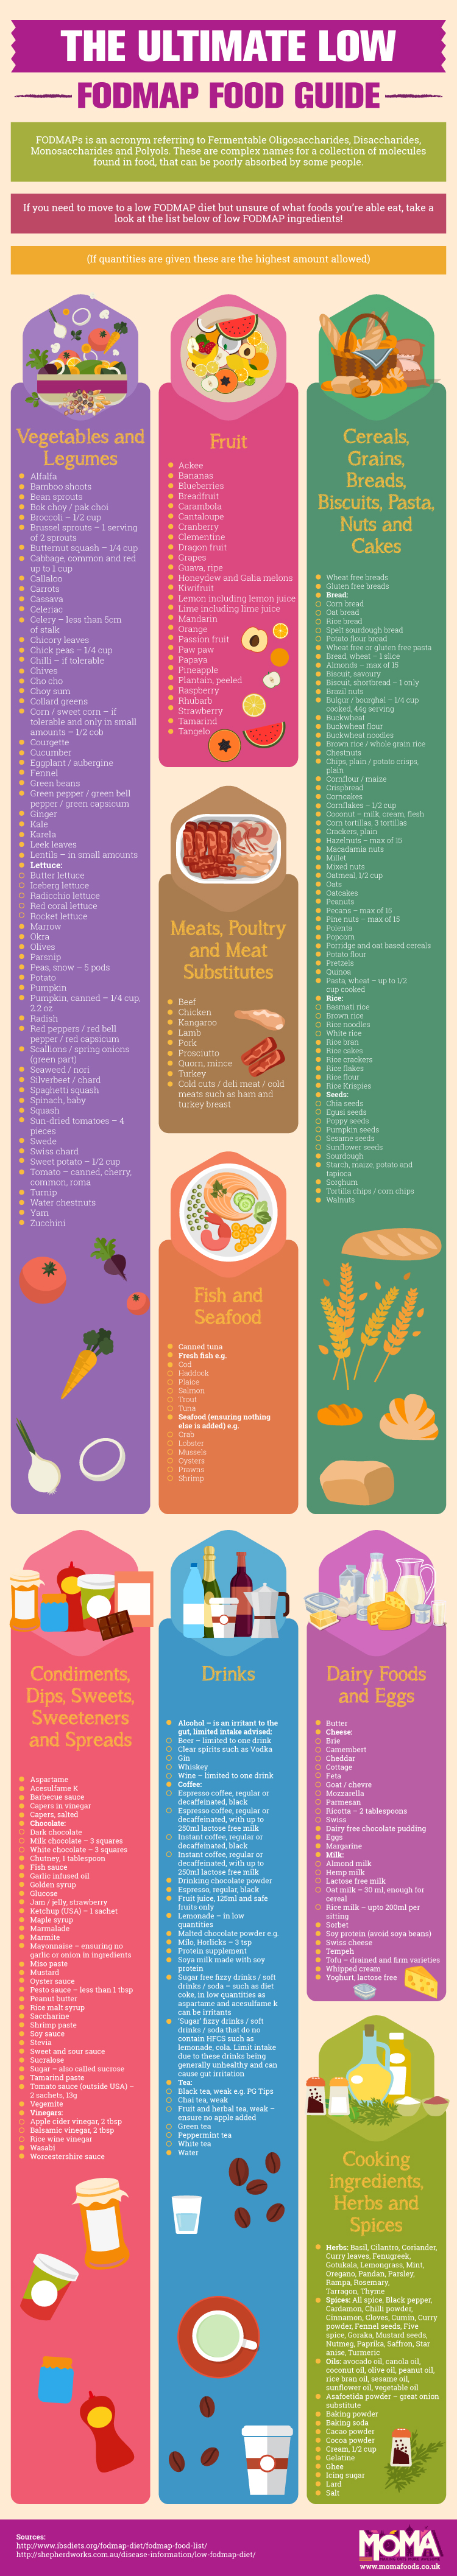 Ultimate-Low-FODMAP-Food-Guide = Eating Low FODMAP Food Can Help with IBS Symptoms